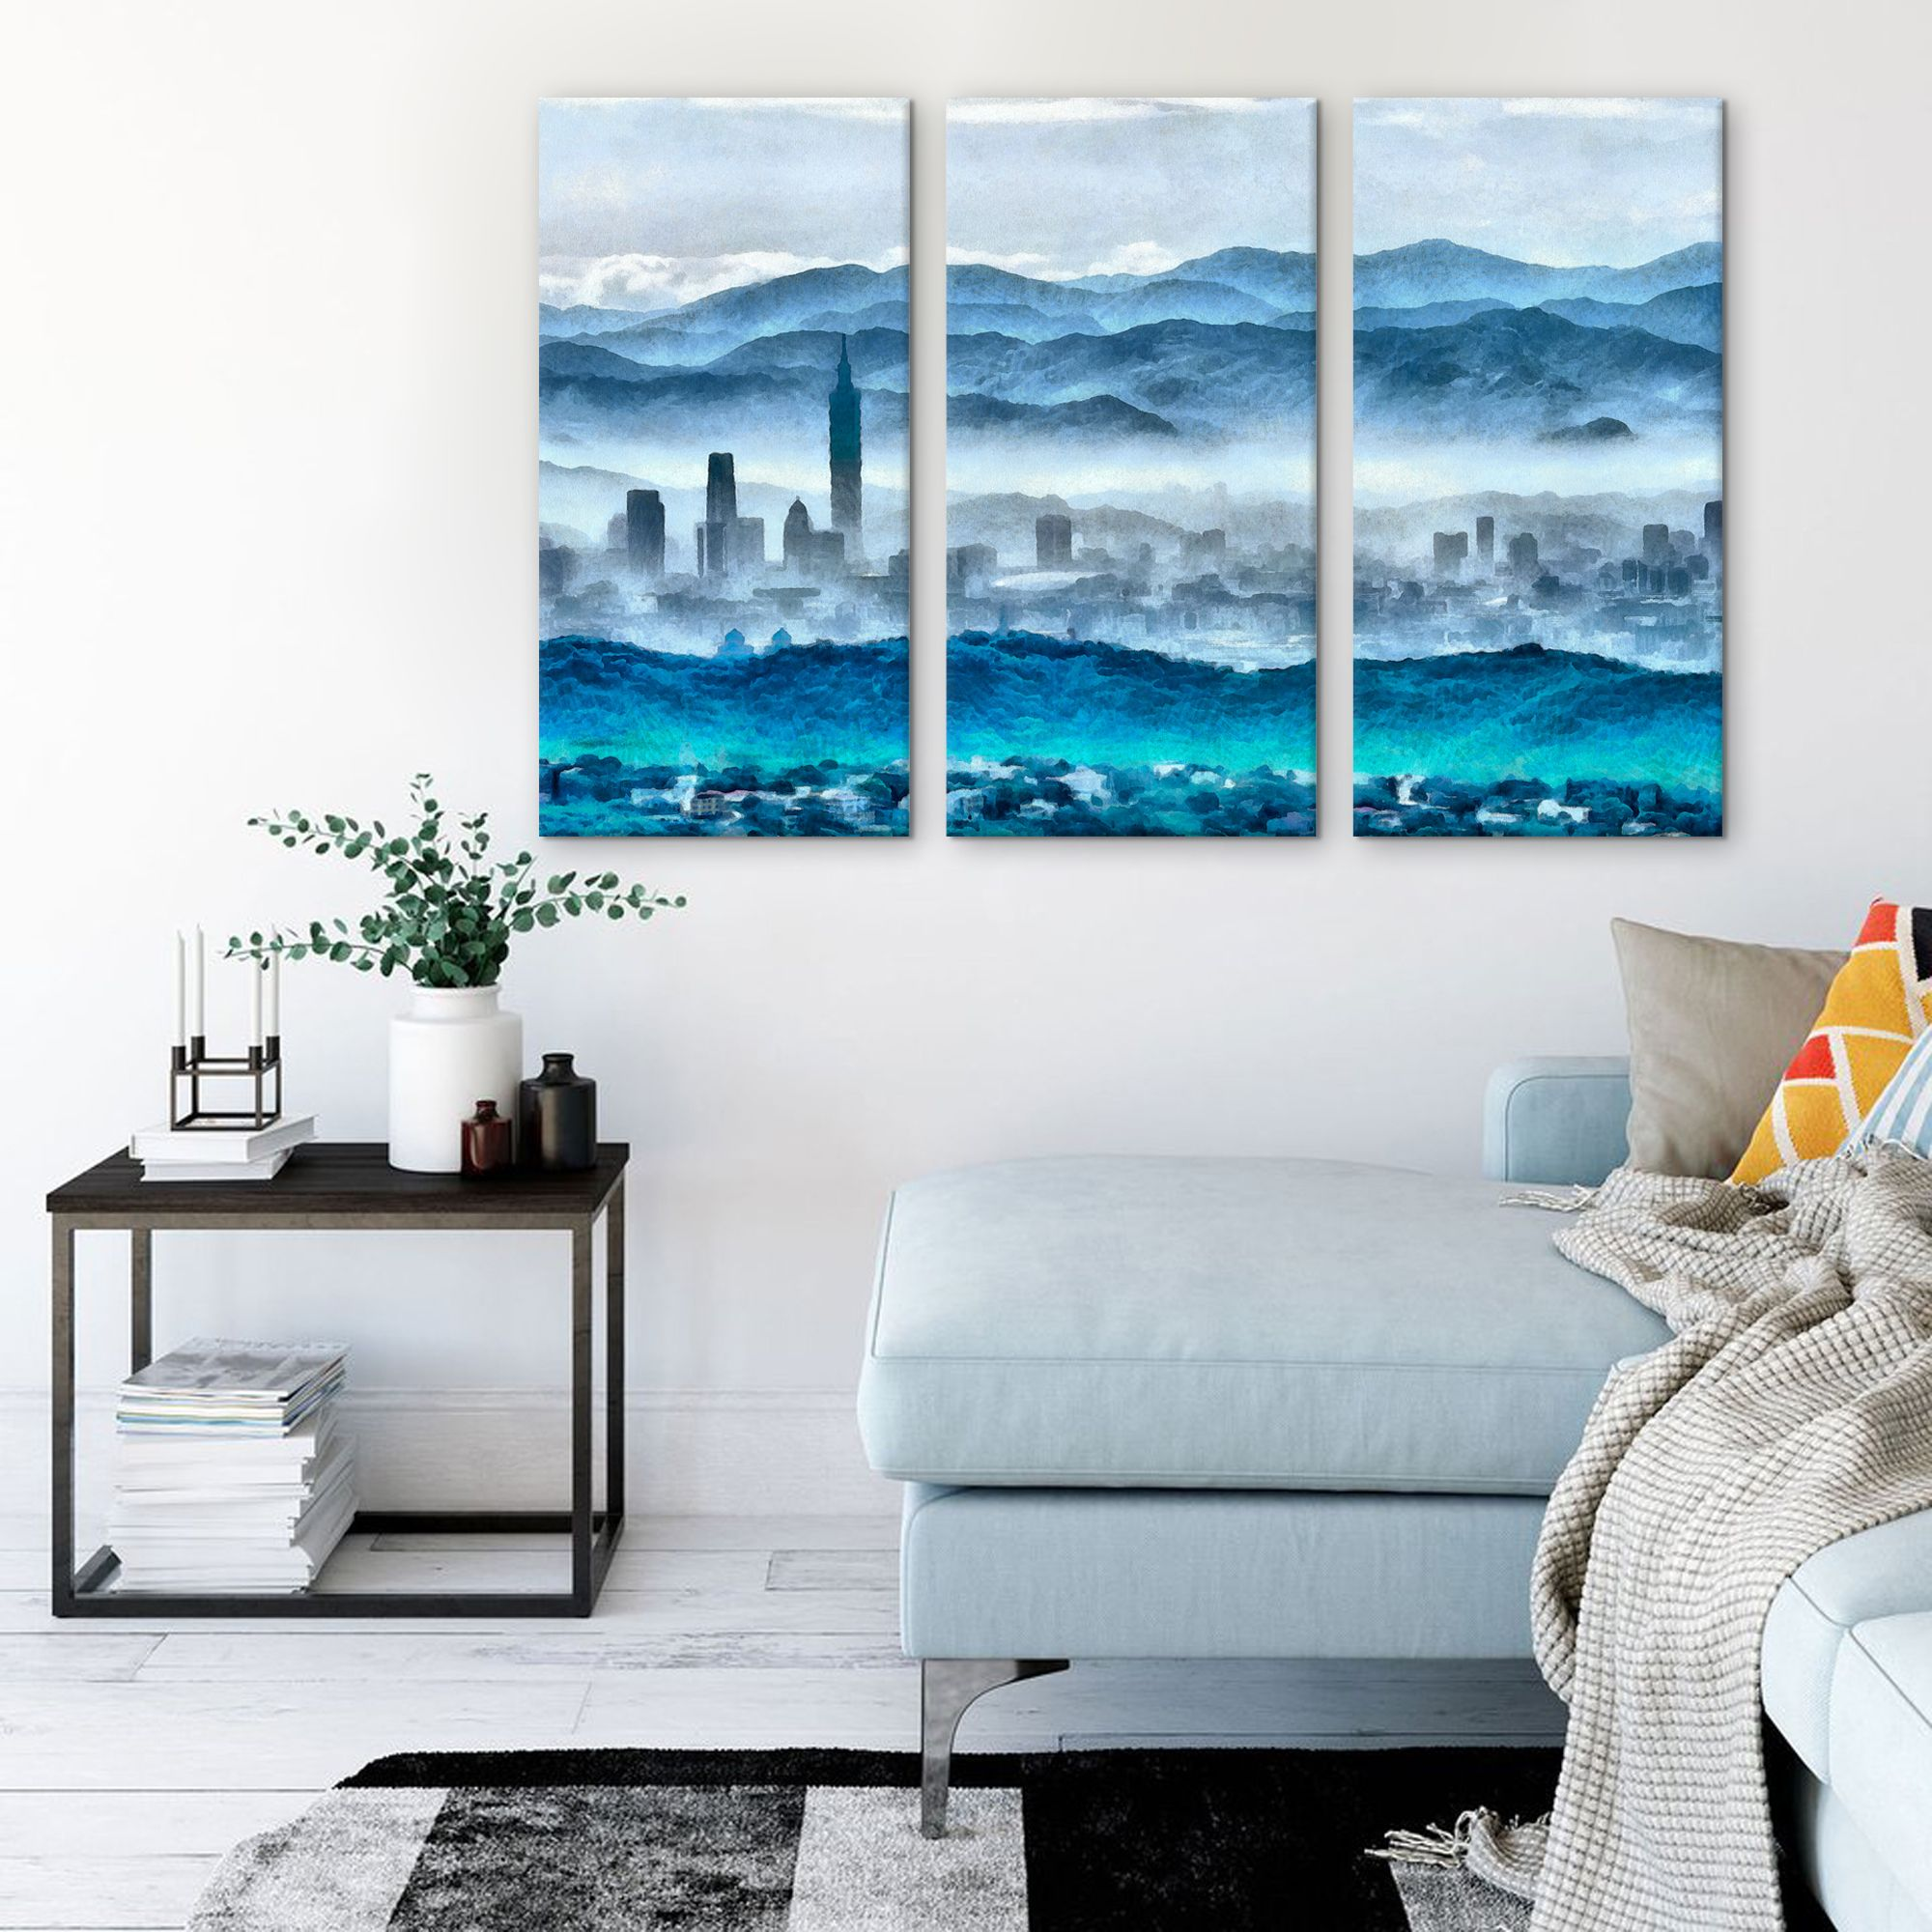 Taipei Skyline Wall Print 3 Panels Xinyi District Wall Art Taiwan Landscape Interior Print Canvas Wall Prints Custom Wall Art Canvas Prints